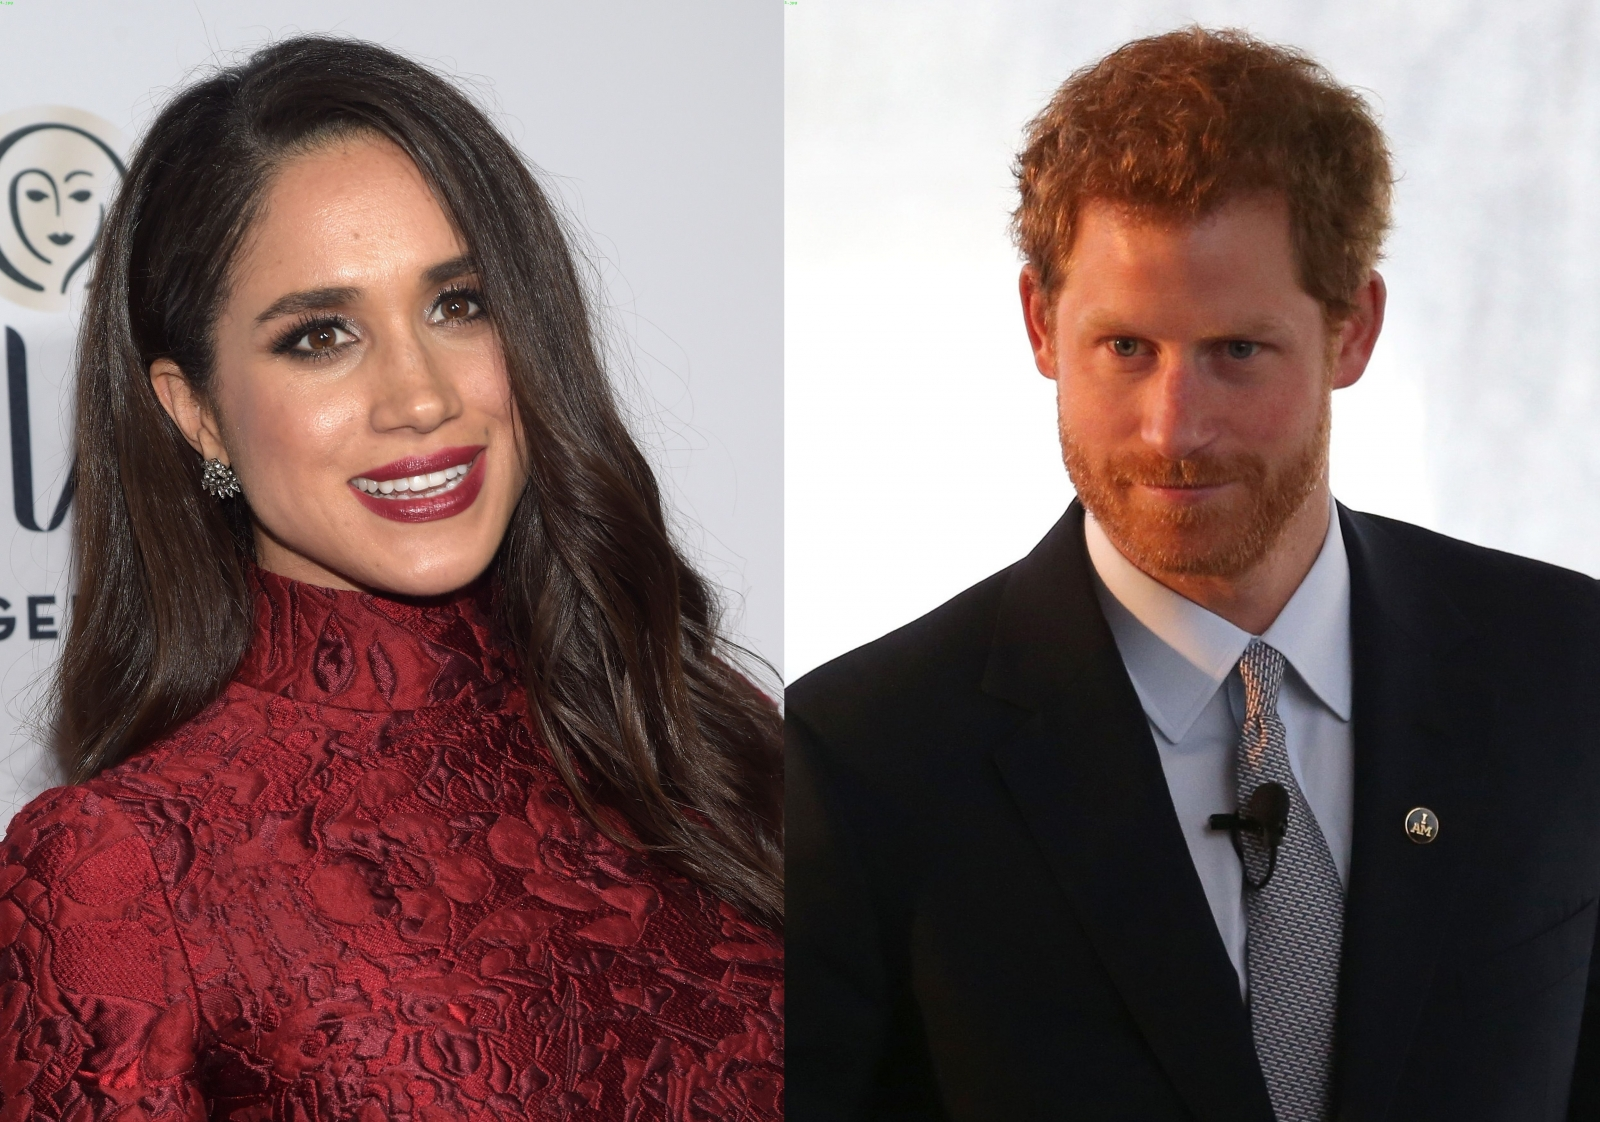 Prince Harry and Meghan Markle Are Canoodling in London Again